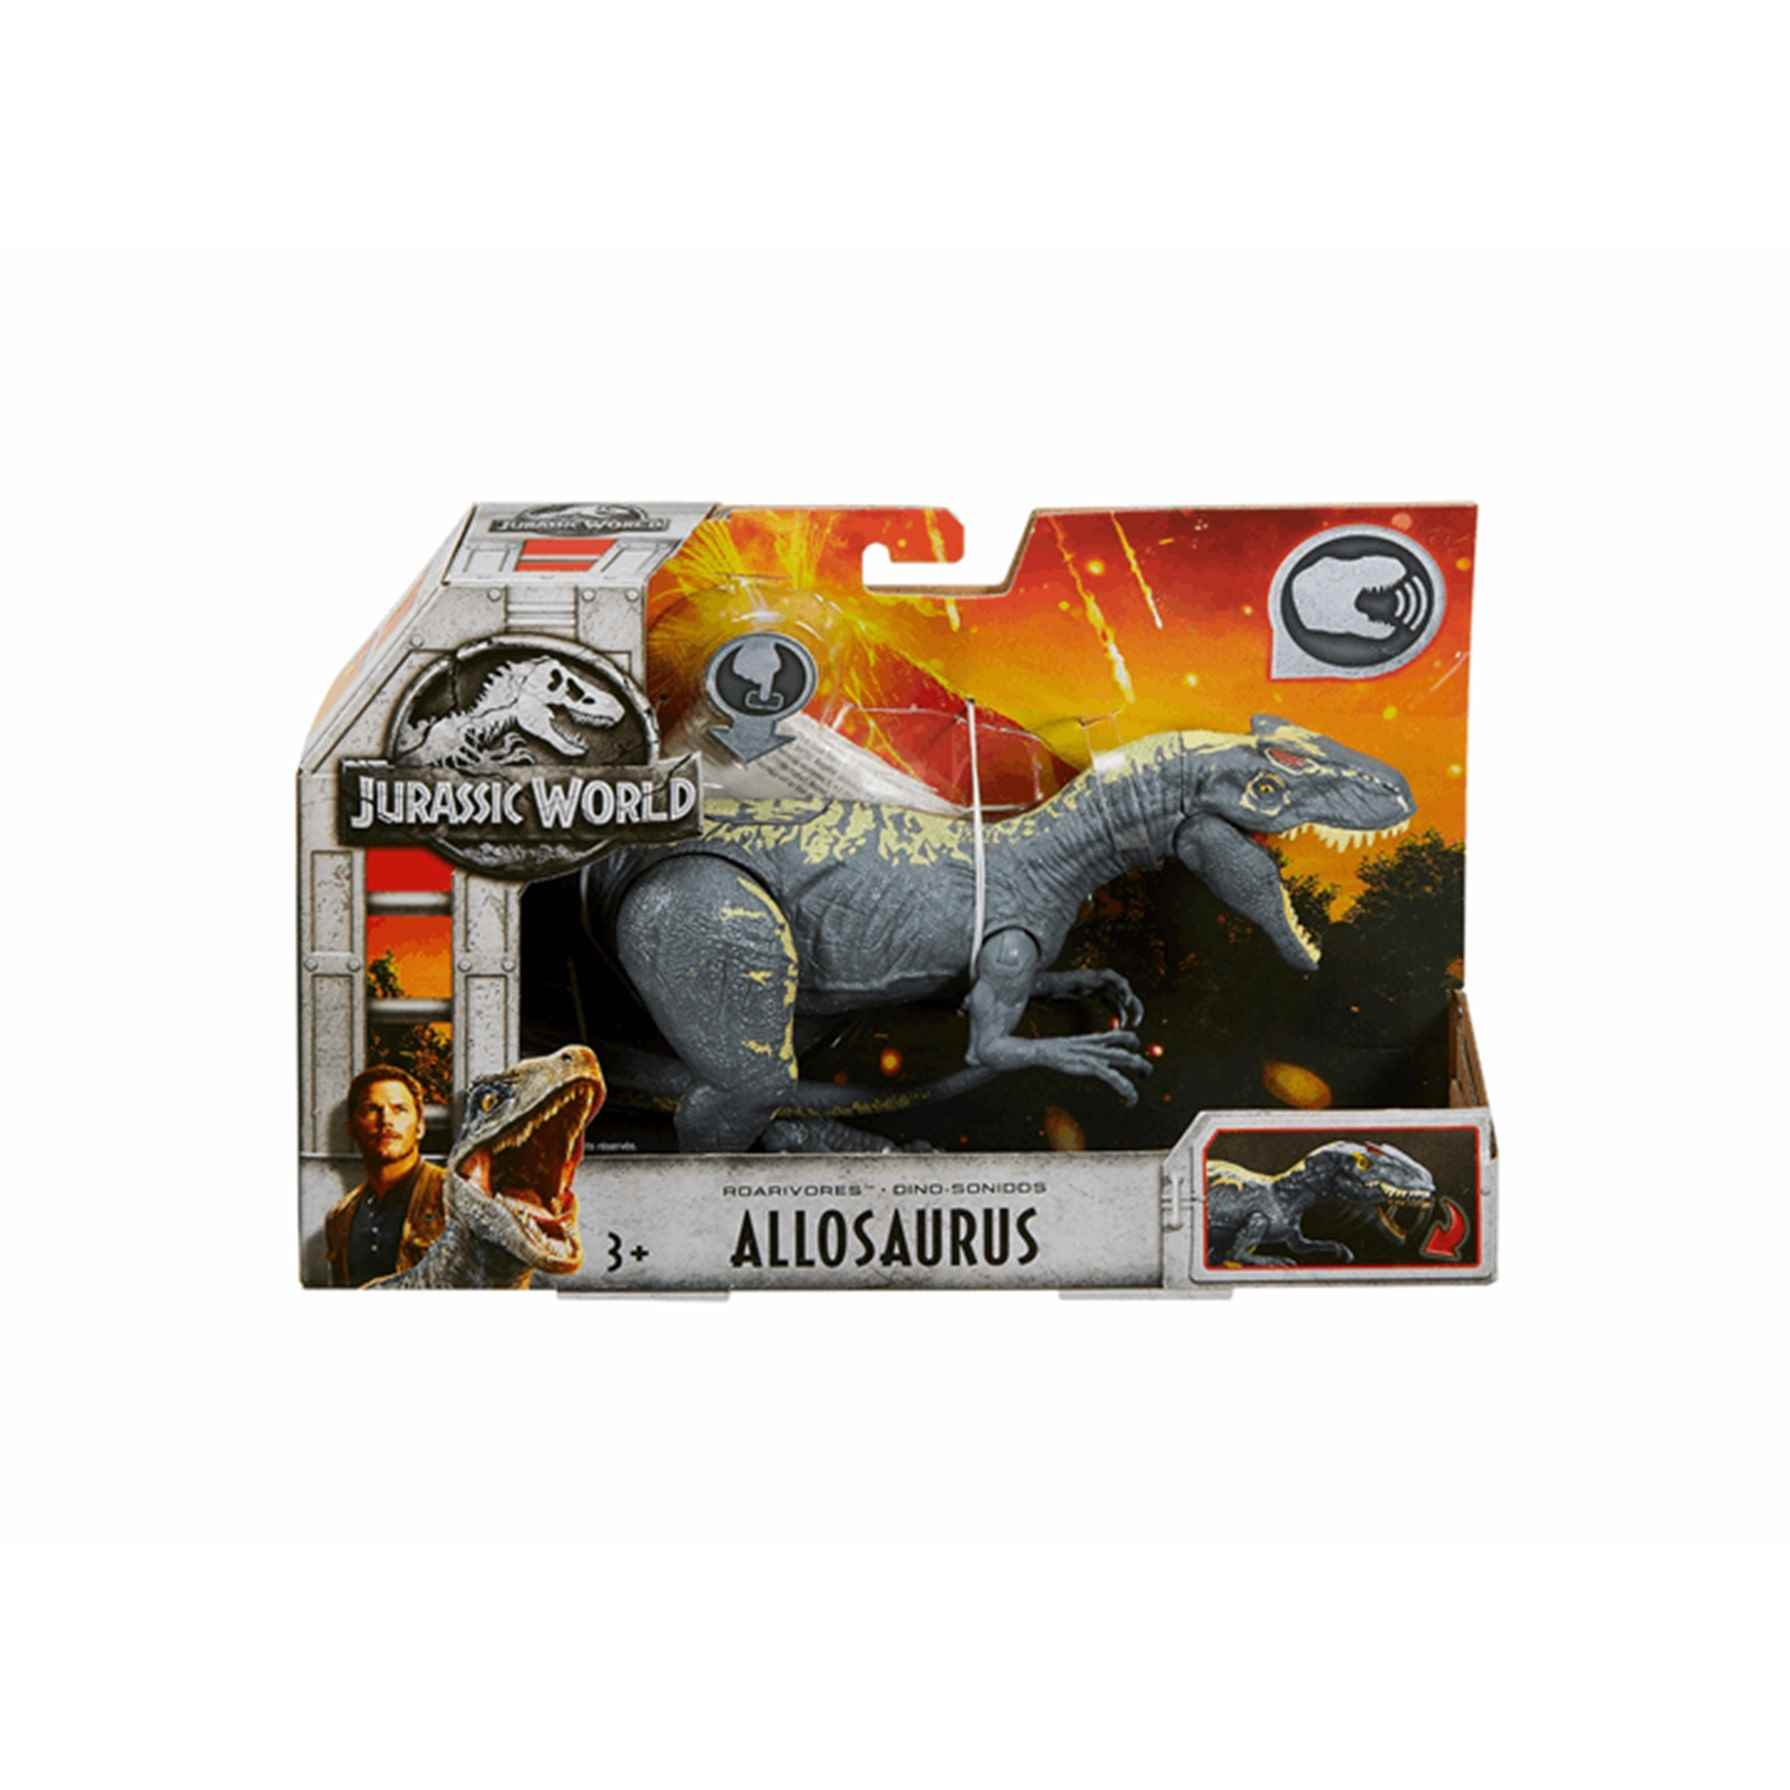 Jurassic World Dino Sonidos Allosaurus